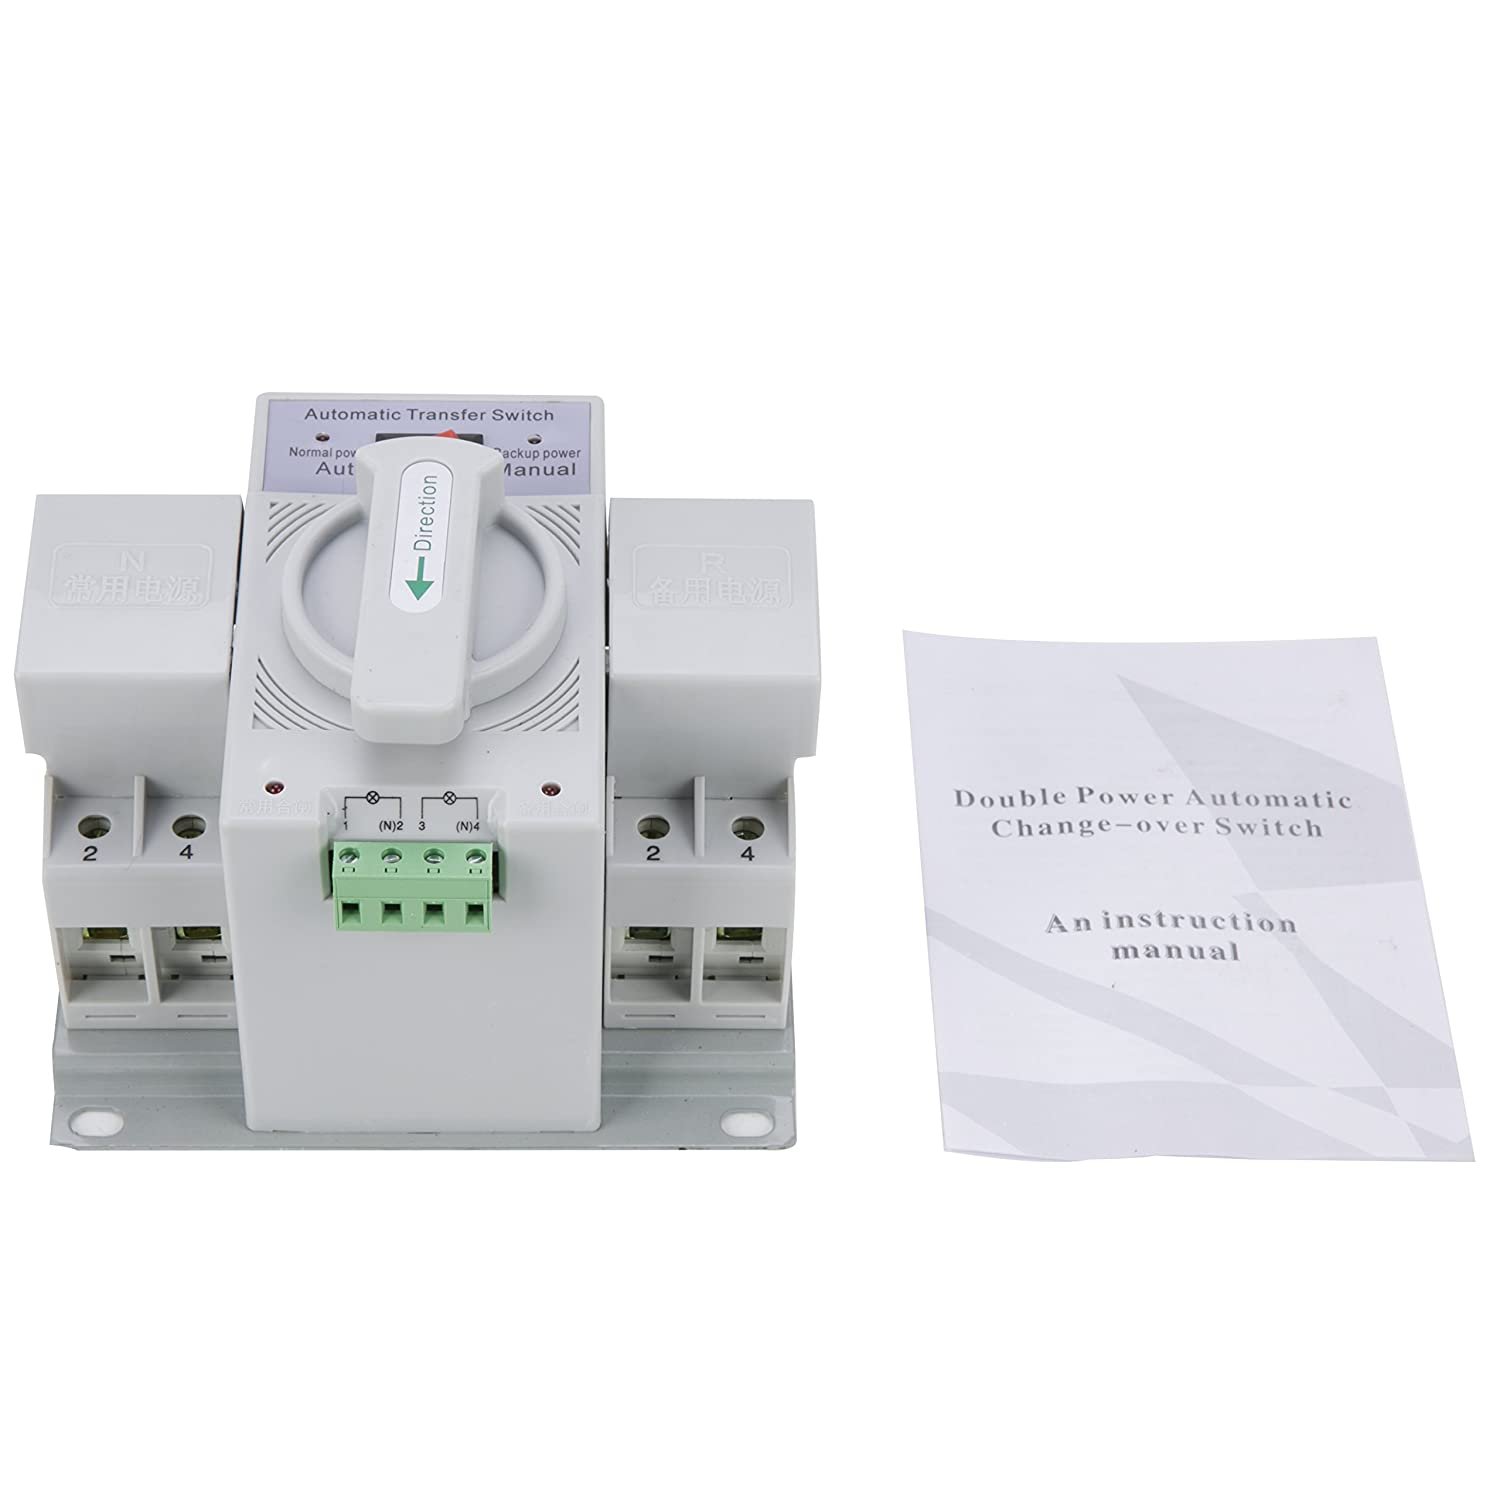 Yaetek 2p 63a 110v Mcb Type Dual Power Automatic Transfer Switch Ats Details About Controller Build Your